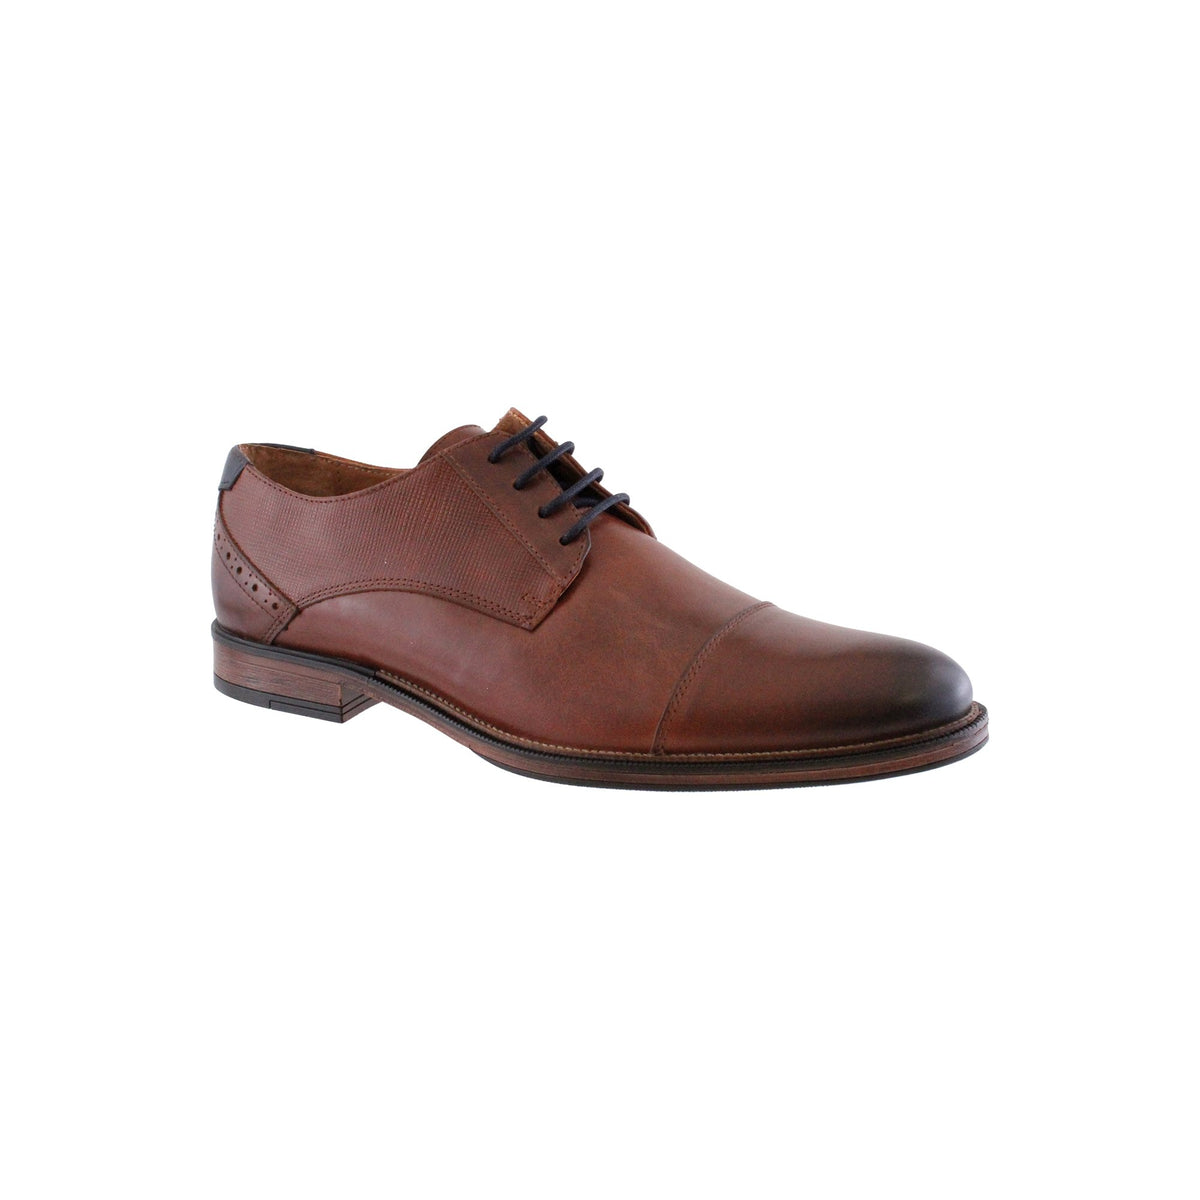 Morgan & Co MGN1020 Cognac Leather